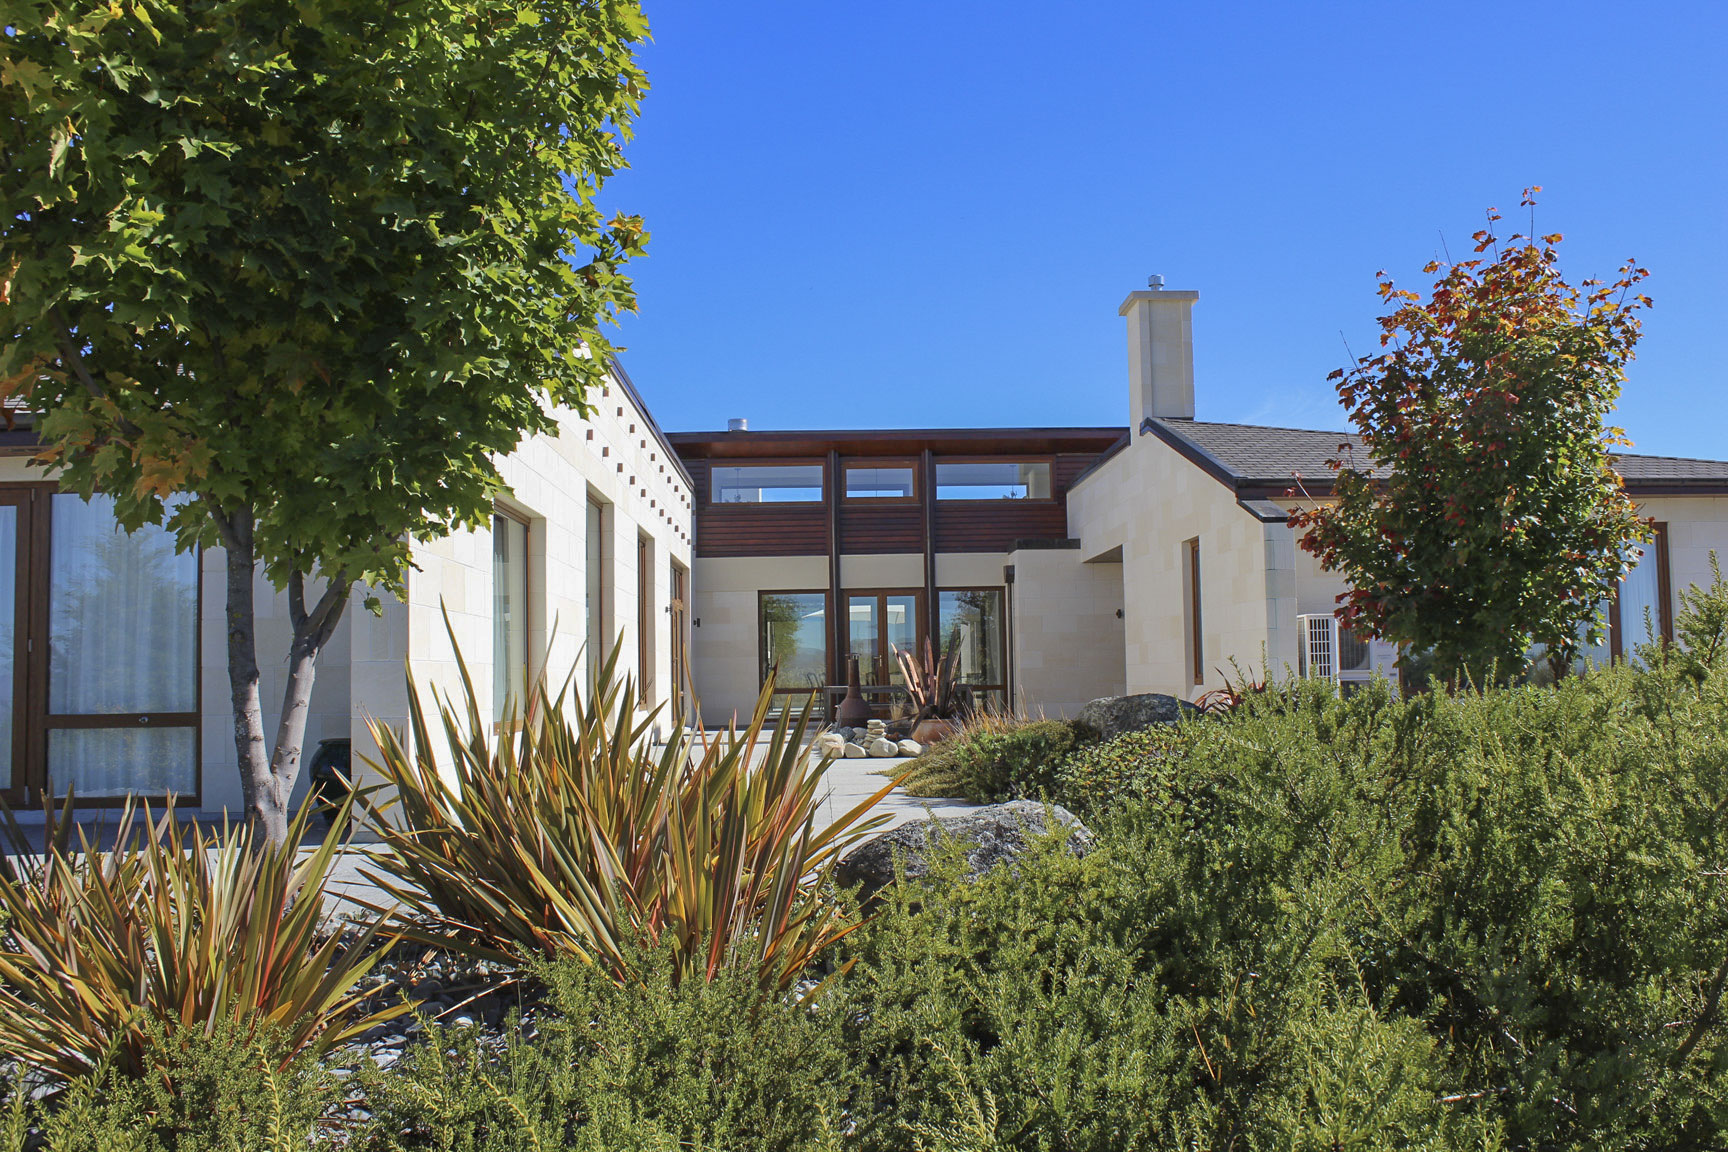 Planting and hardscape materials were selected to complement the Oamaru stone and timber on the building.JPG